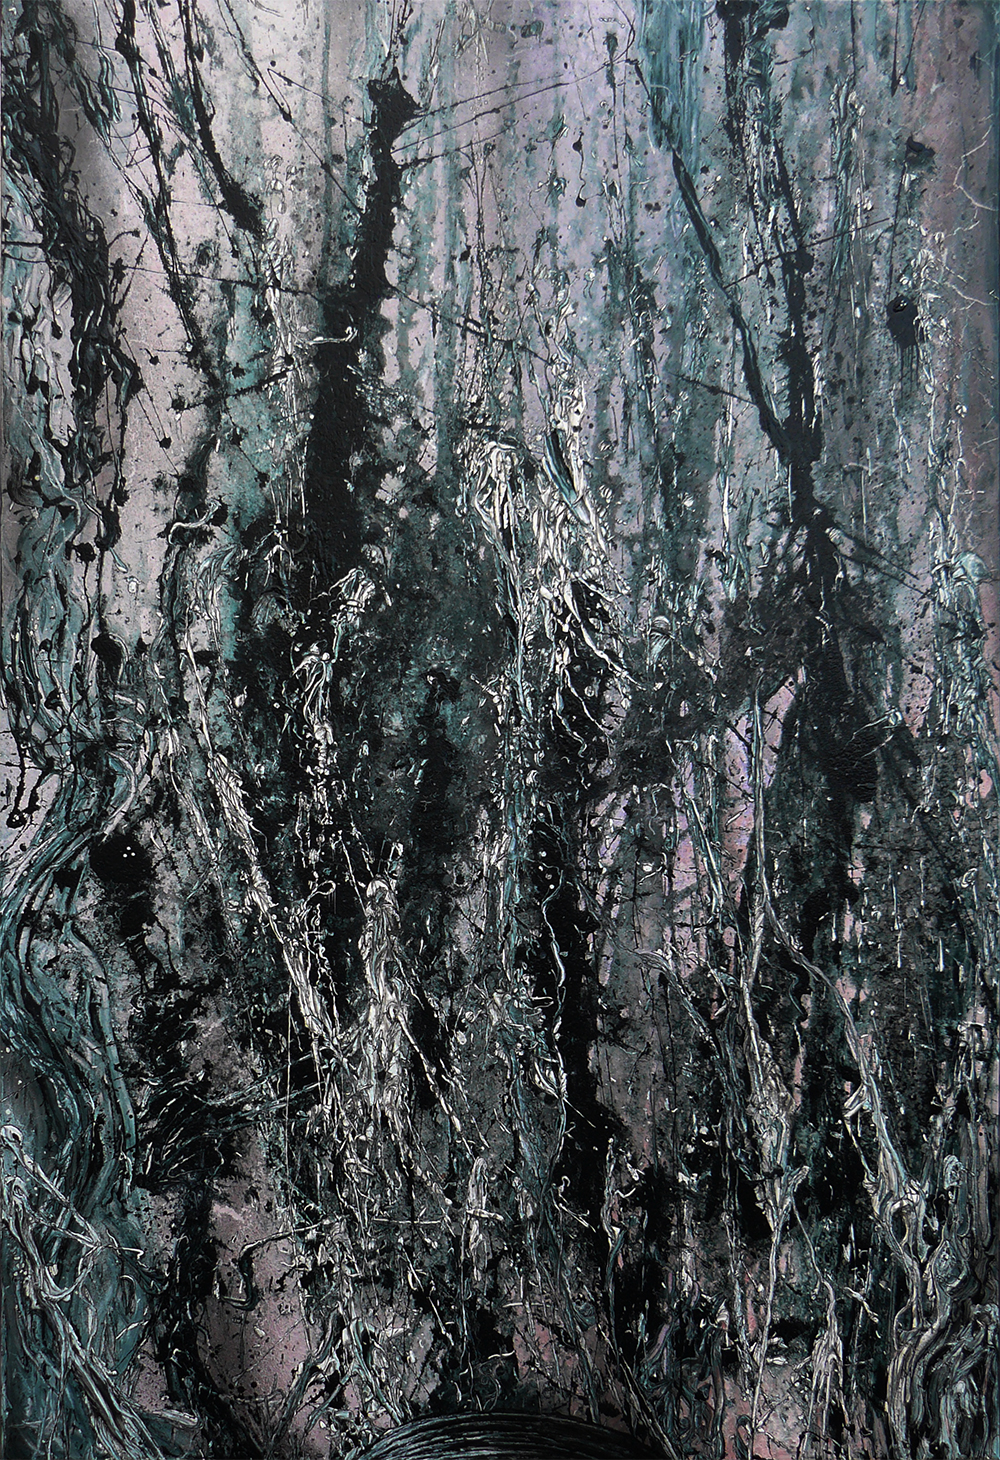 Ohne Titel | Acrylic lacquer, india ink on canavs | 120x80cm | 2011